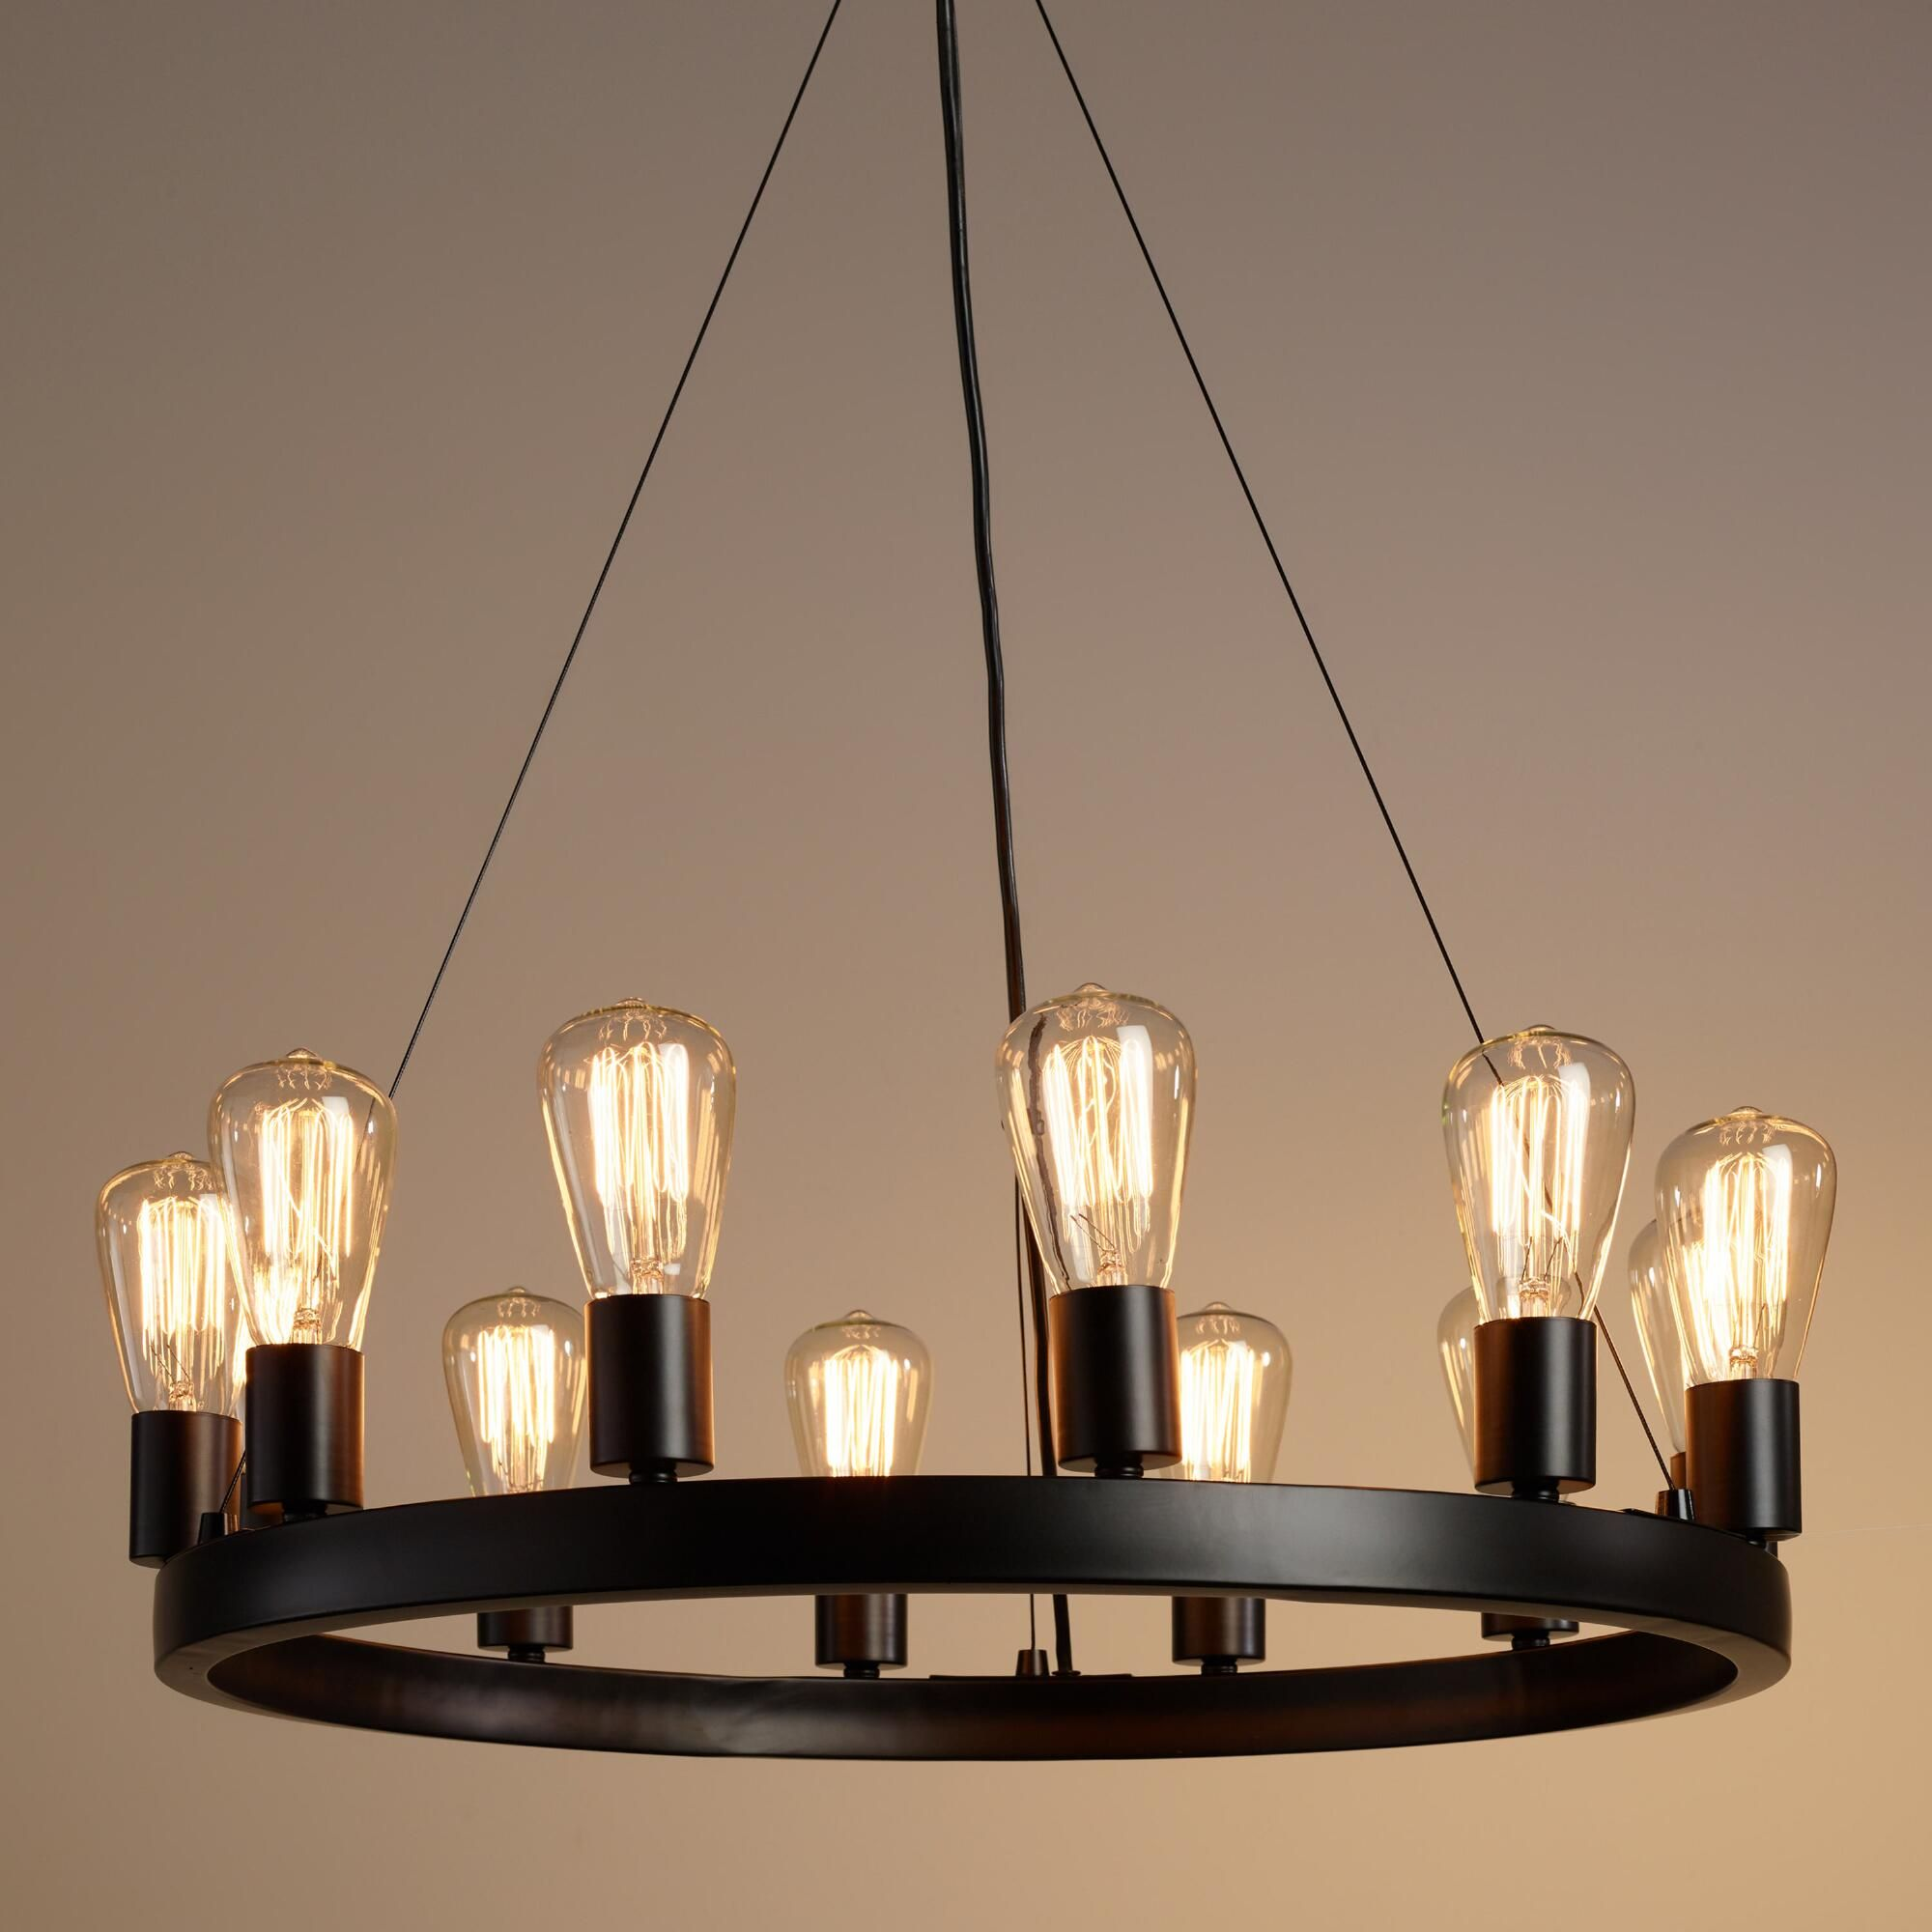 Crafted Of Iron With An Style Black Finish Our Exclusive Round Chandelier Fills